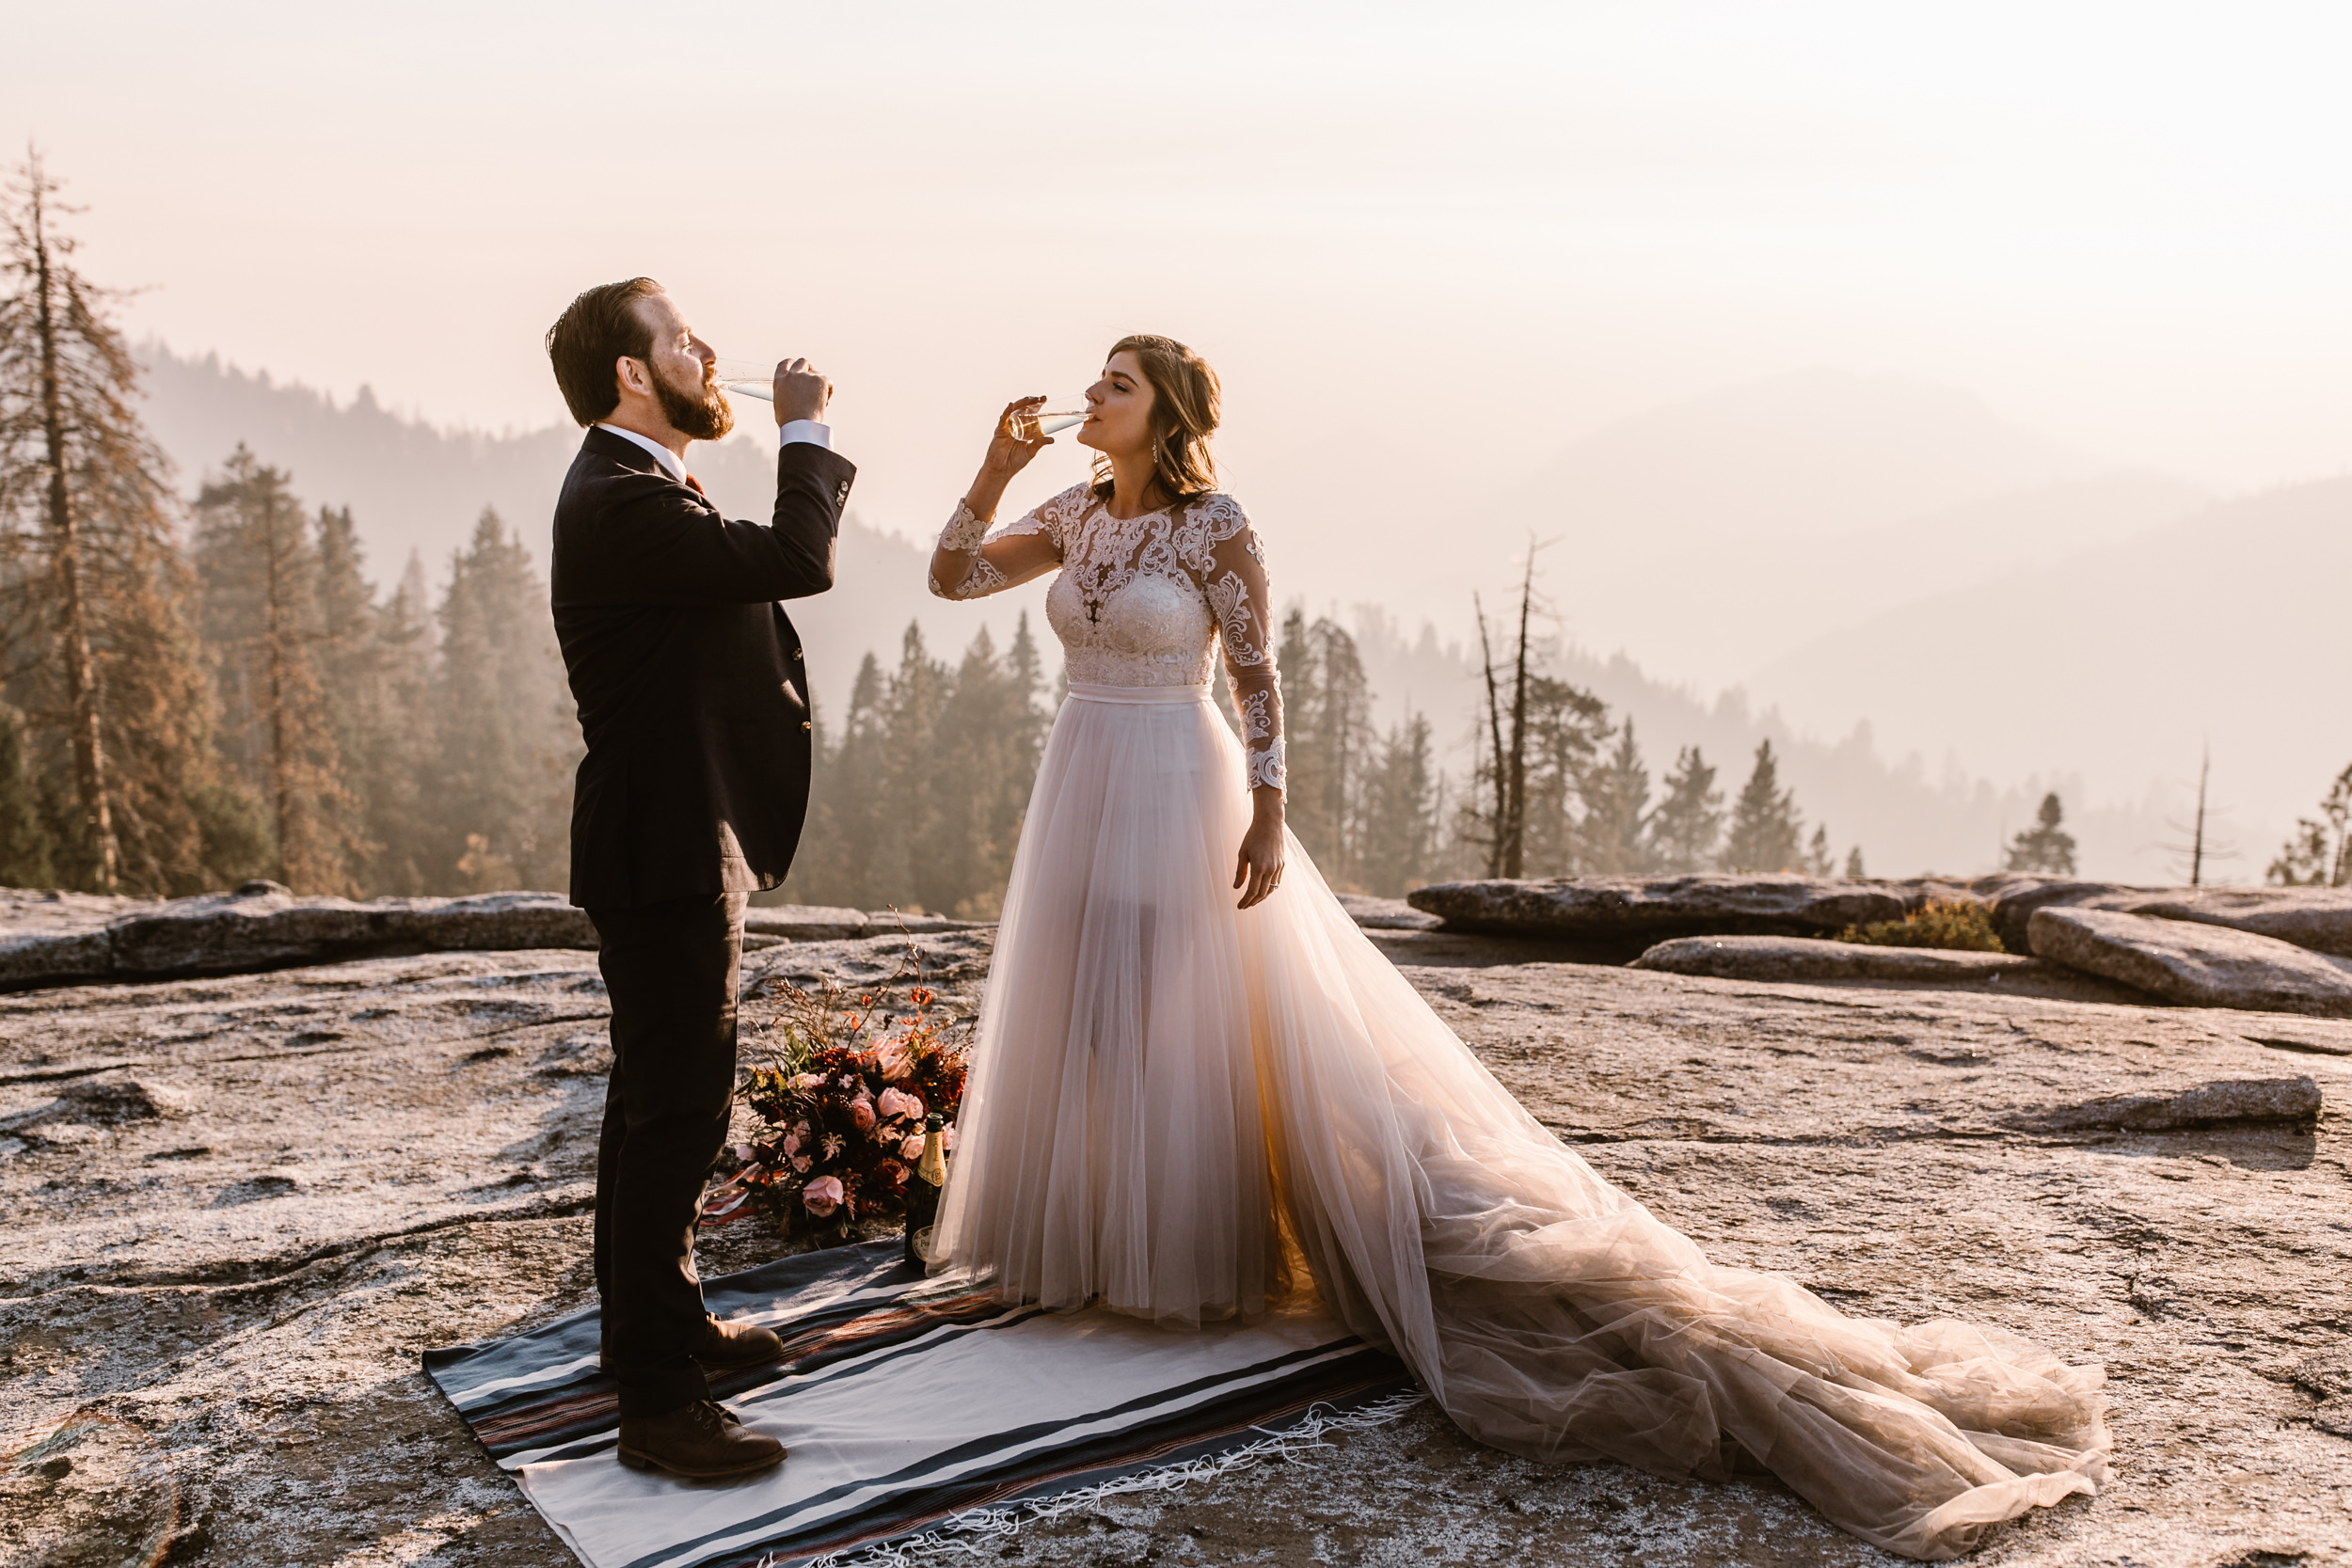 elopement wedding in sequoia national park | adventure weddings in california | the hearnes adventure photography